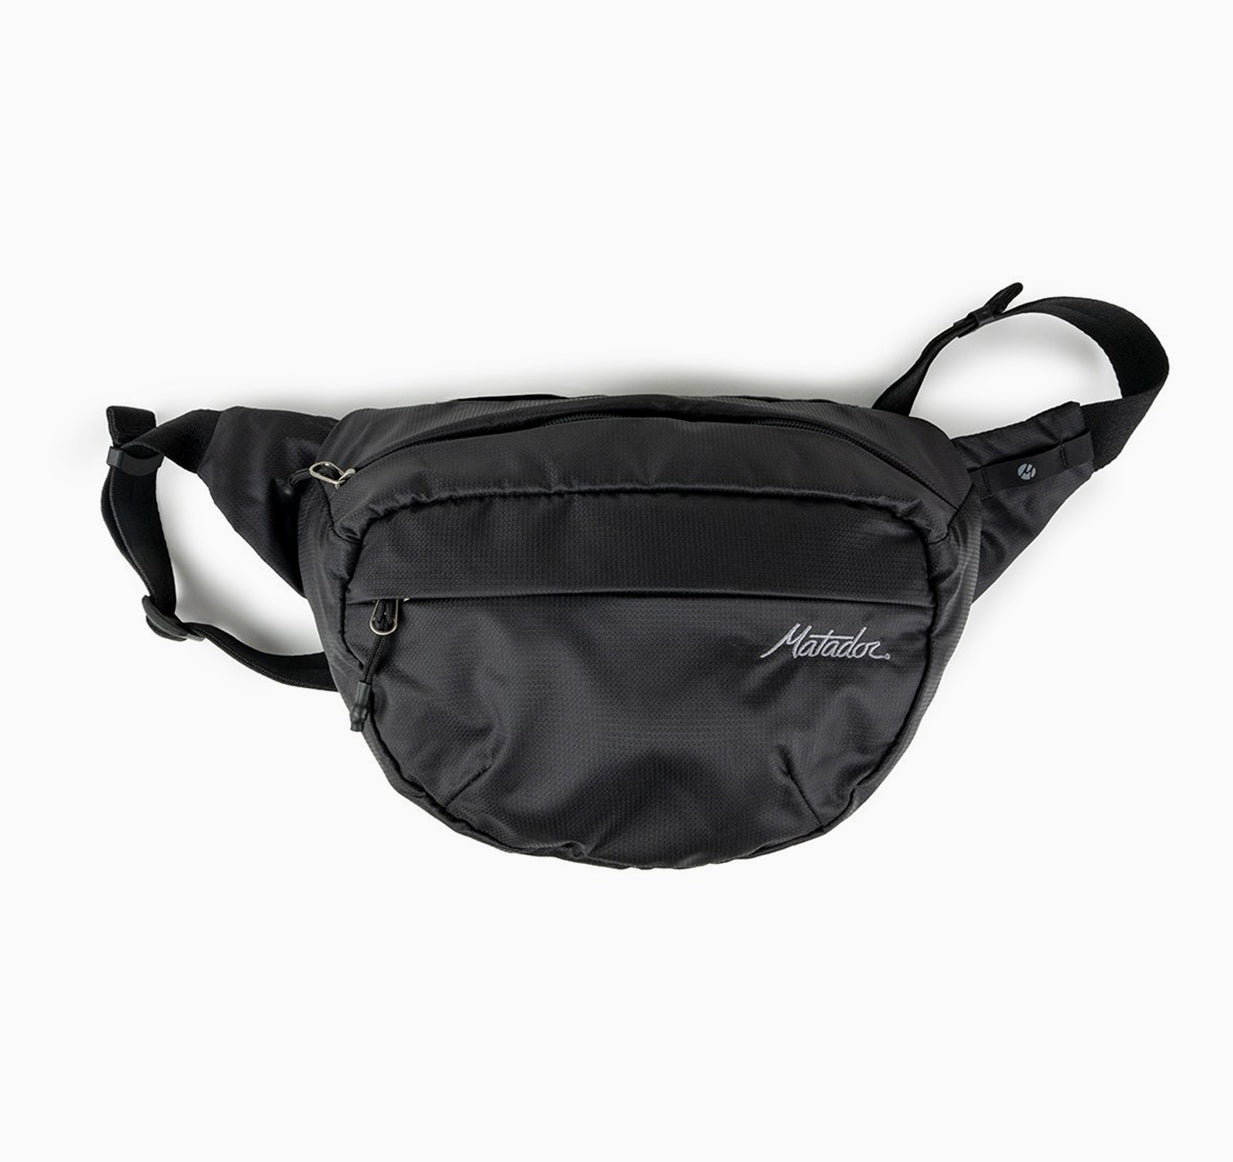 Front view of hip pack on white background